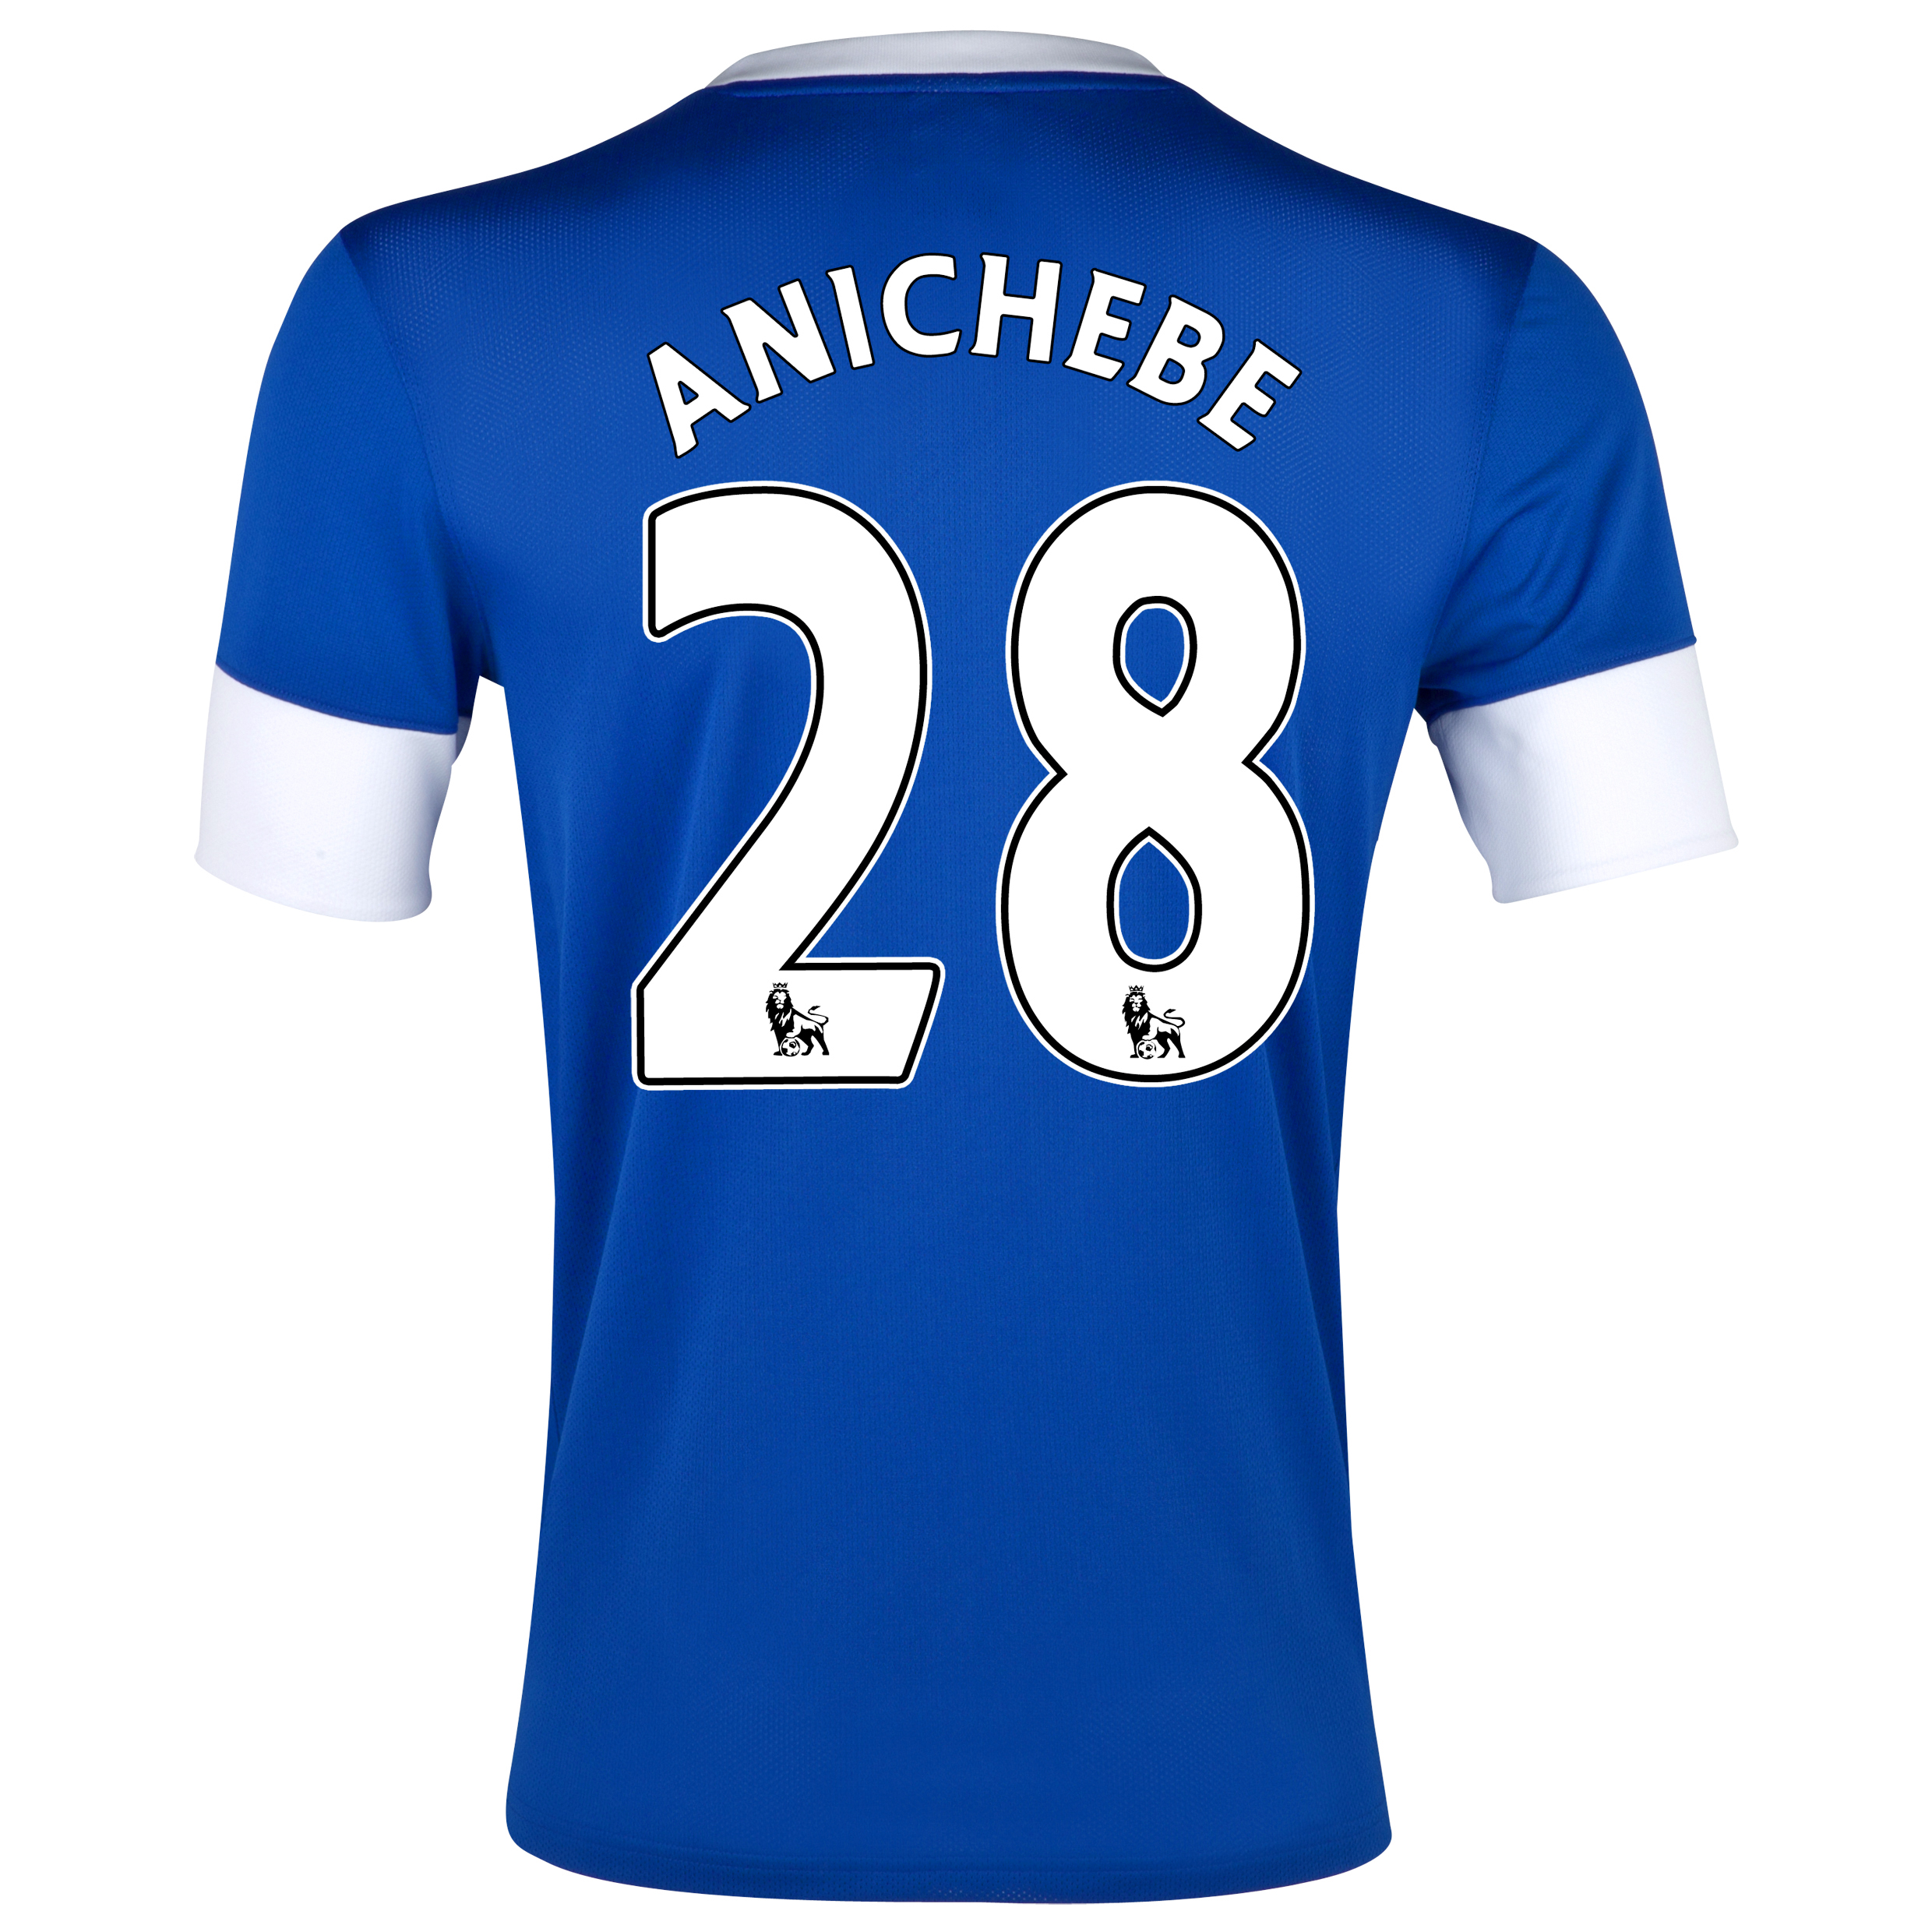 Everton Home Shirt 2012/13 with Anichebe 28 printing